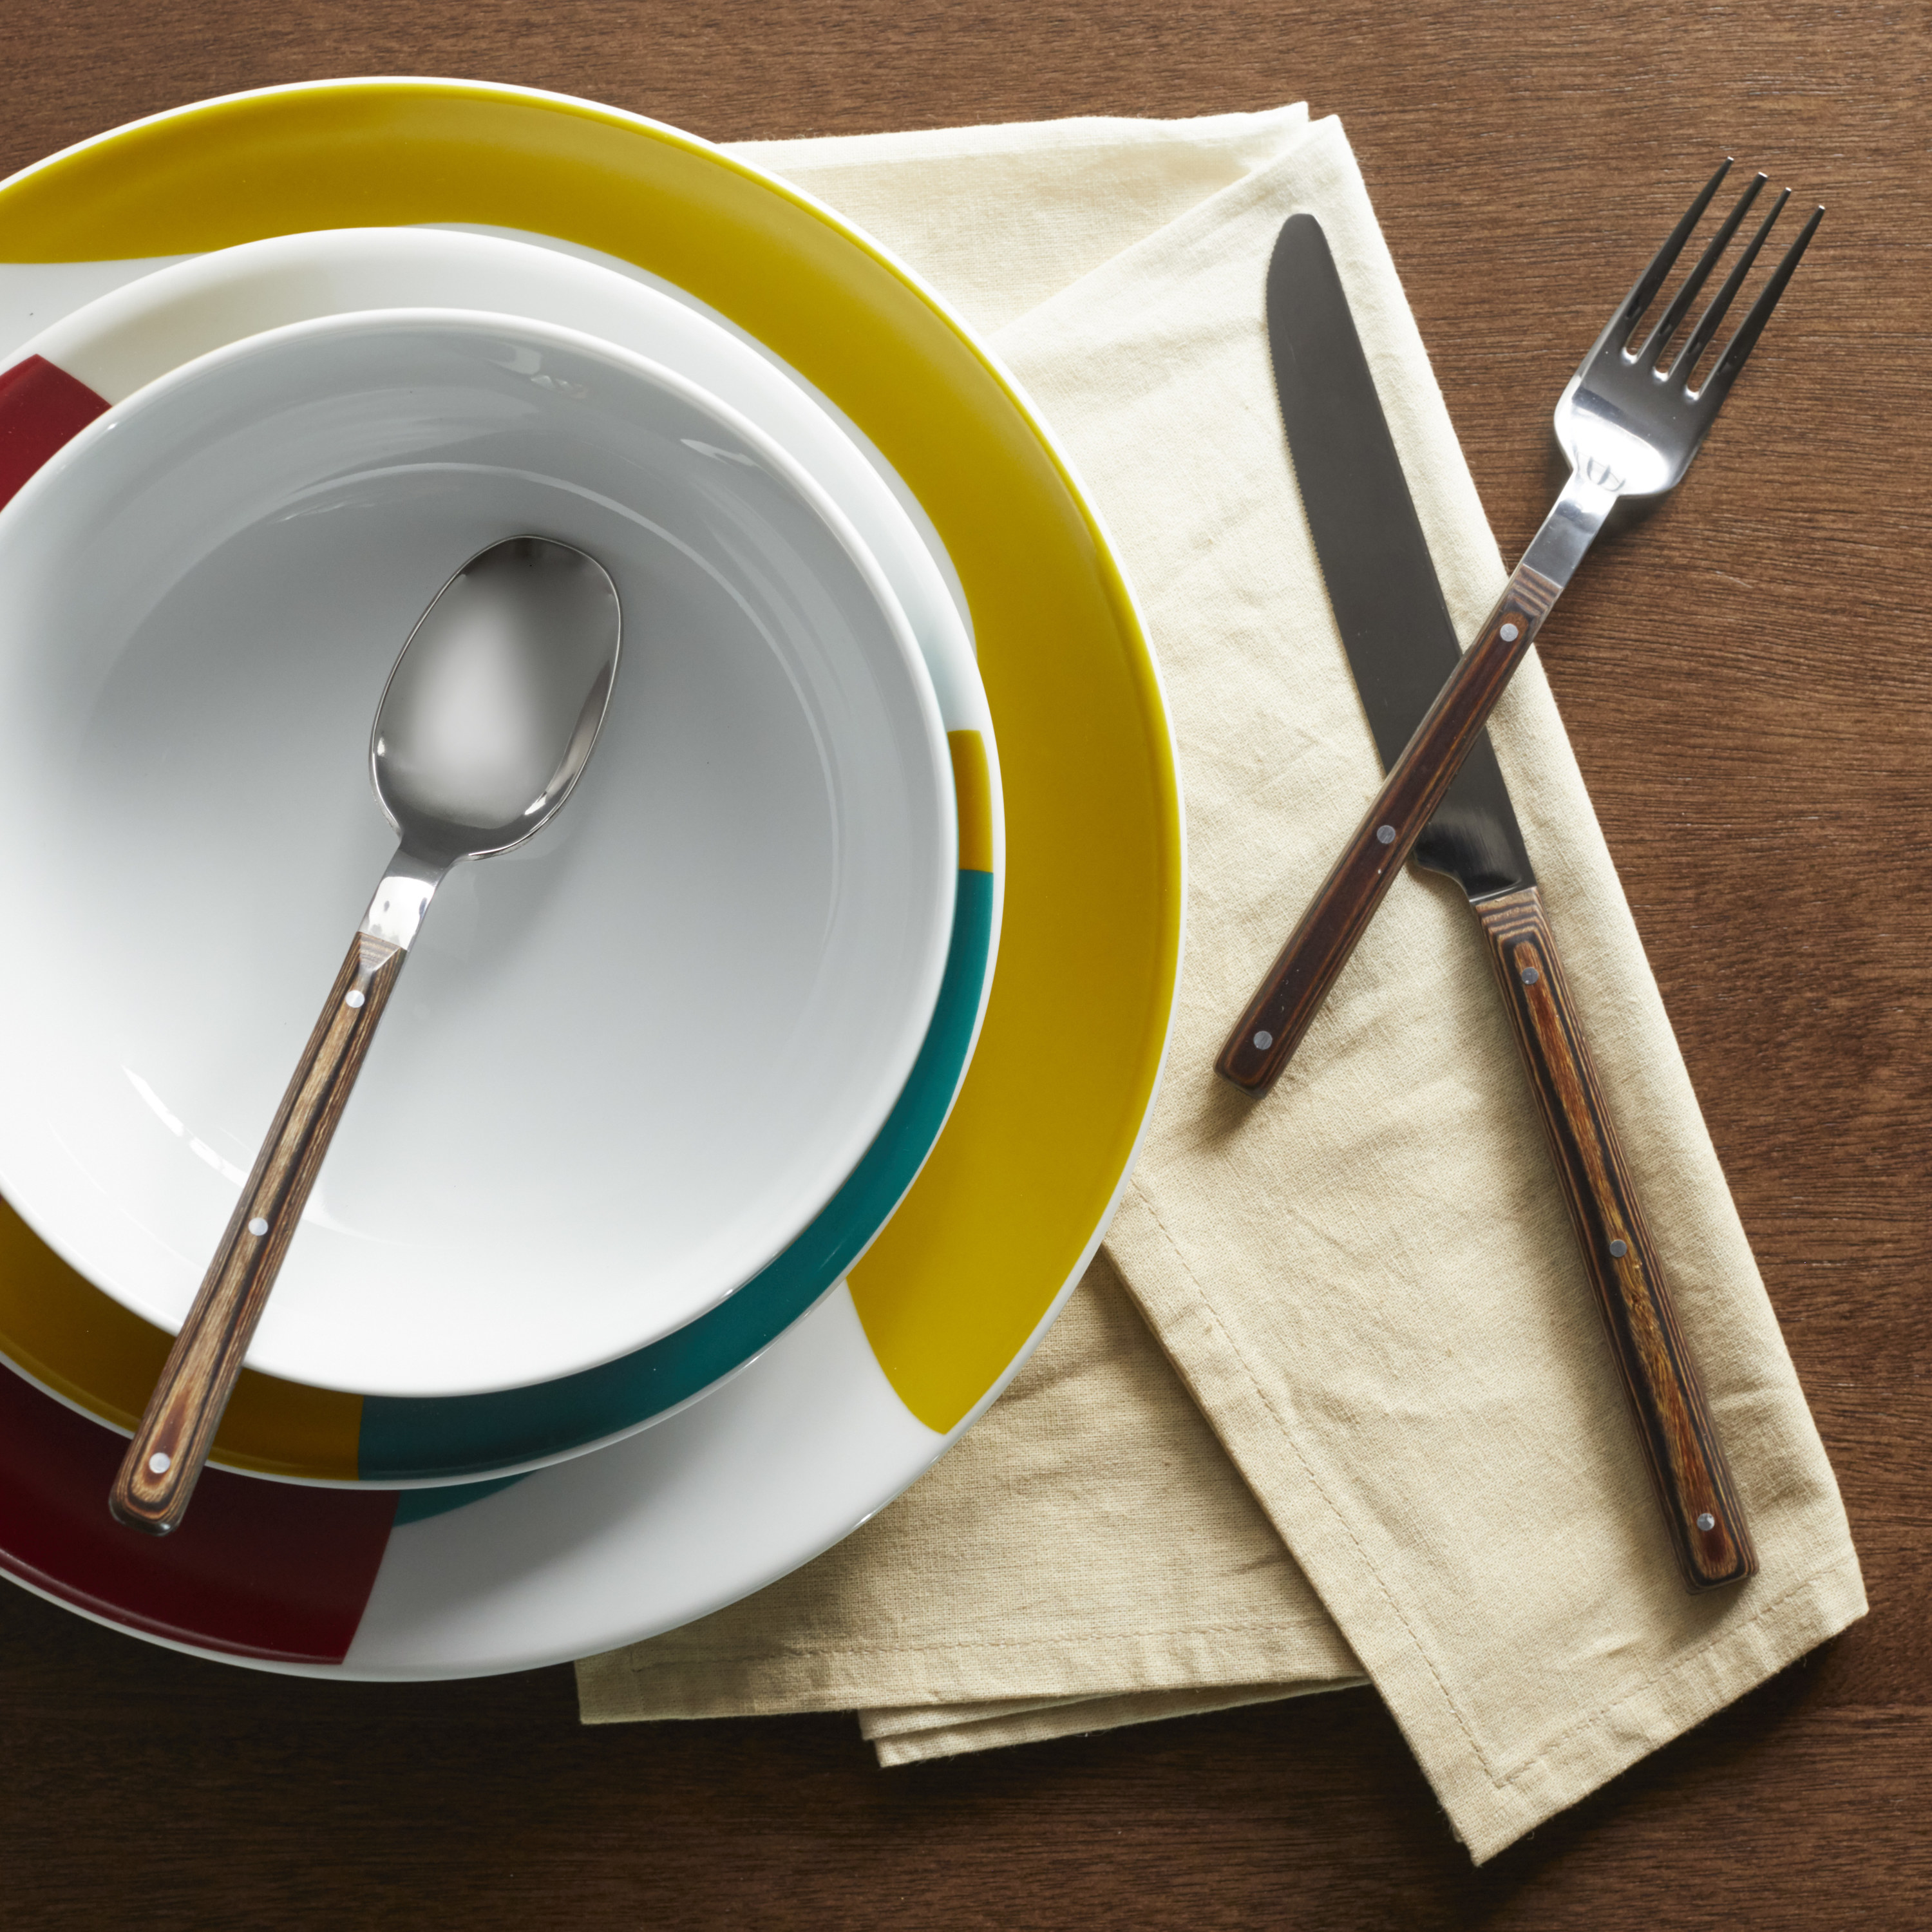 a spoon fork and knife sitting at a table setting